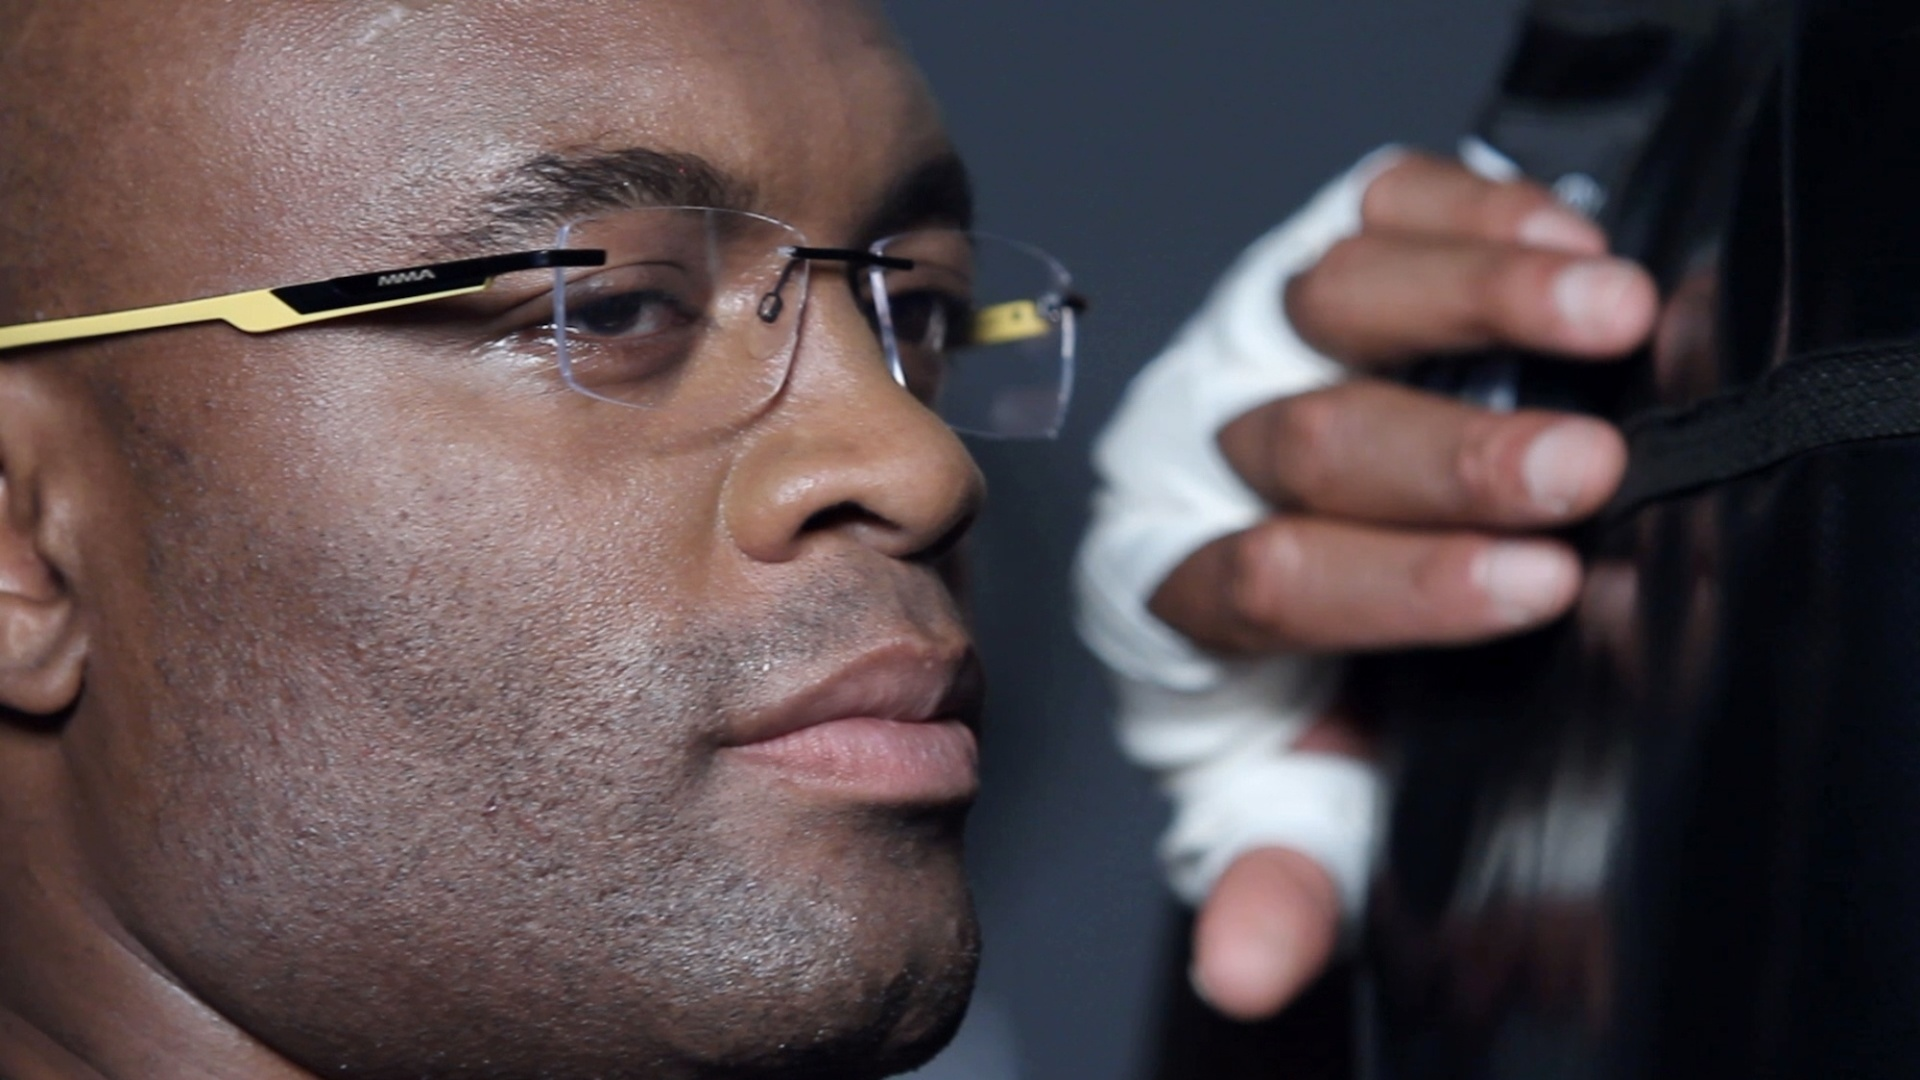 27.fev.2013 - Anderson Silva lanou sua prpria linha de culos chamada Atitude MMA e posou para fotos como modelo da sua marca